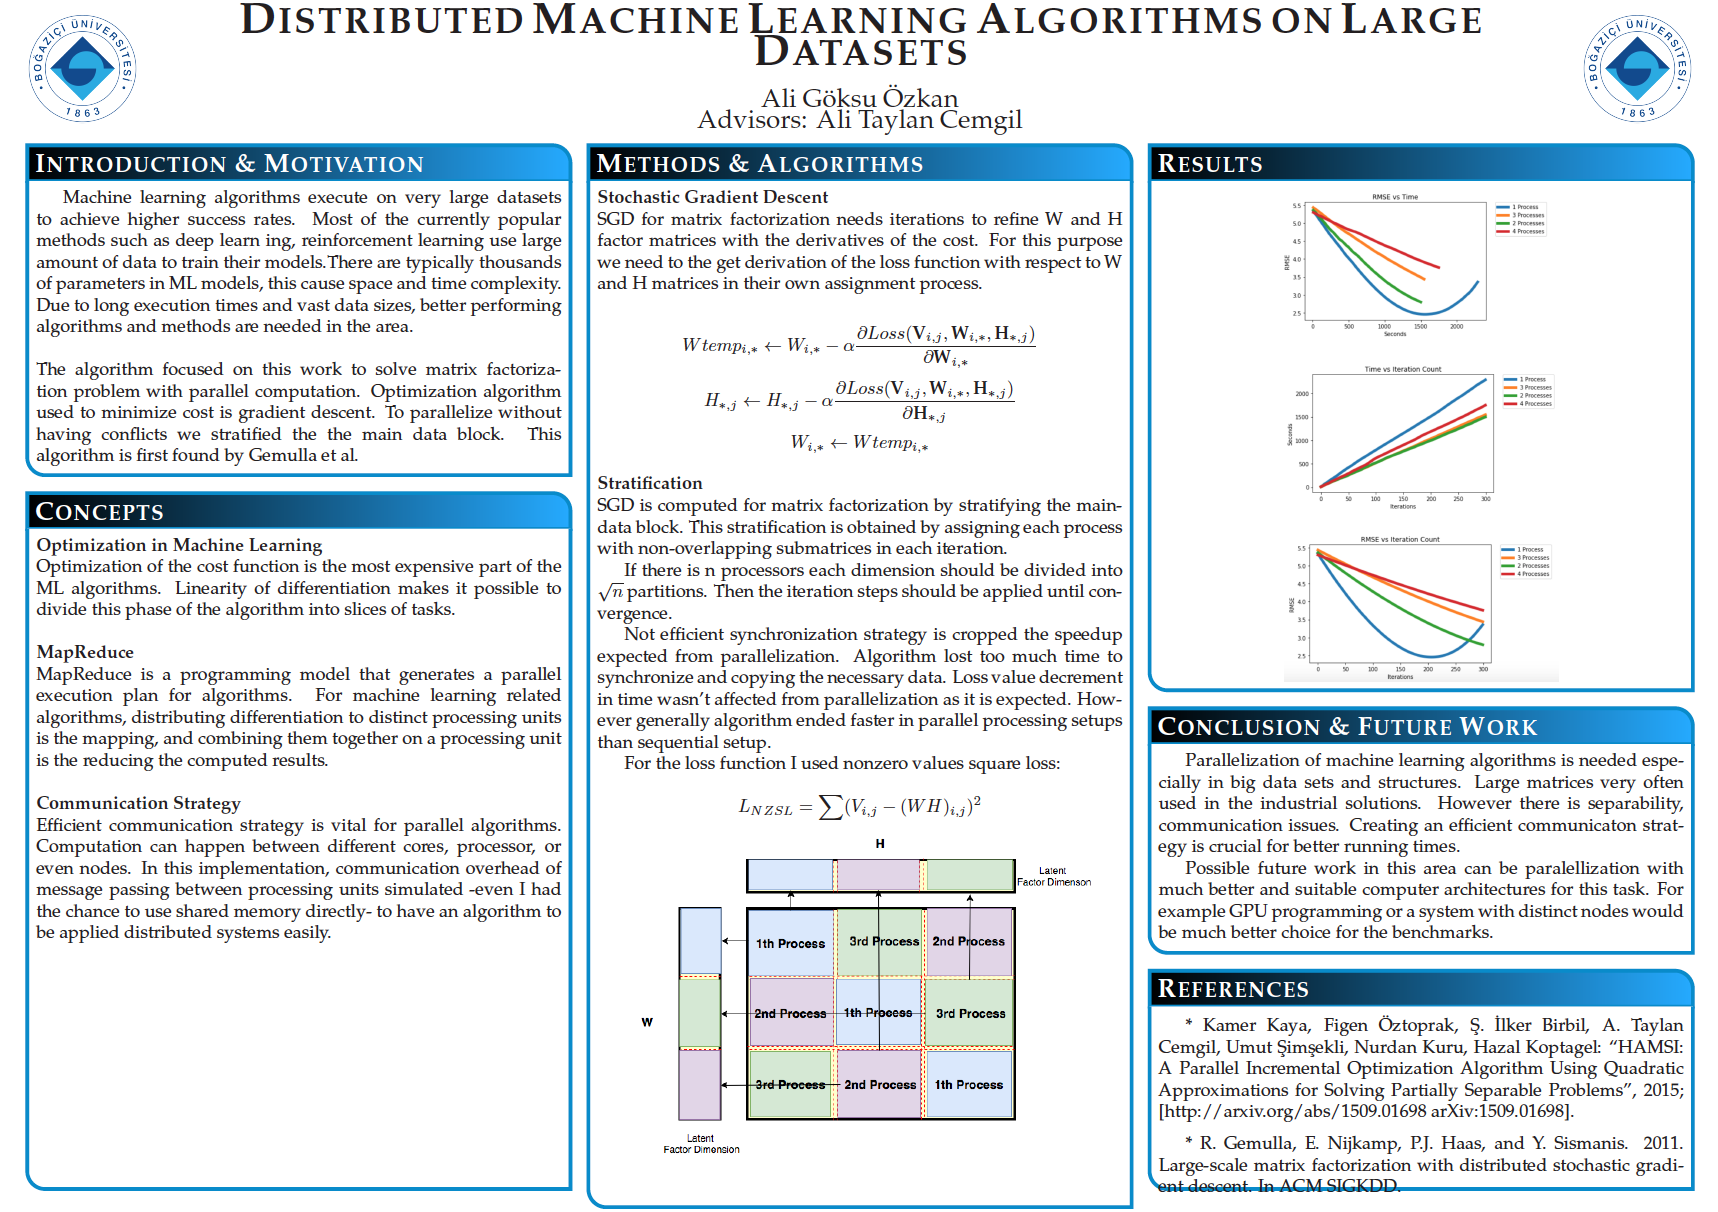 Distributed Machine Learning Algorithms on Large Datasets